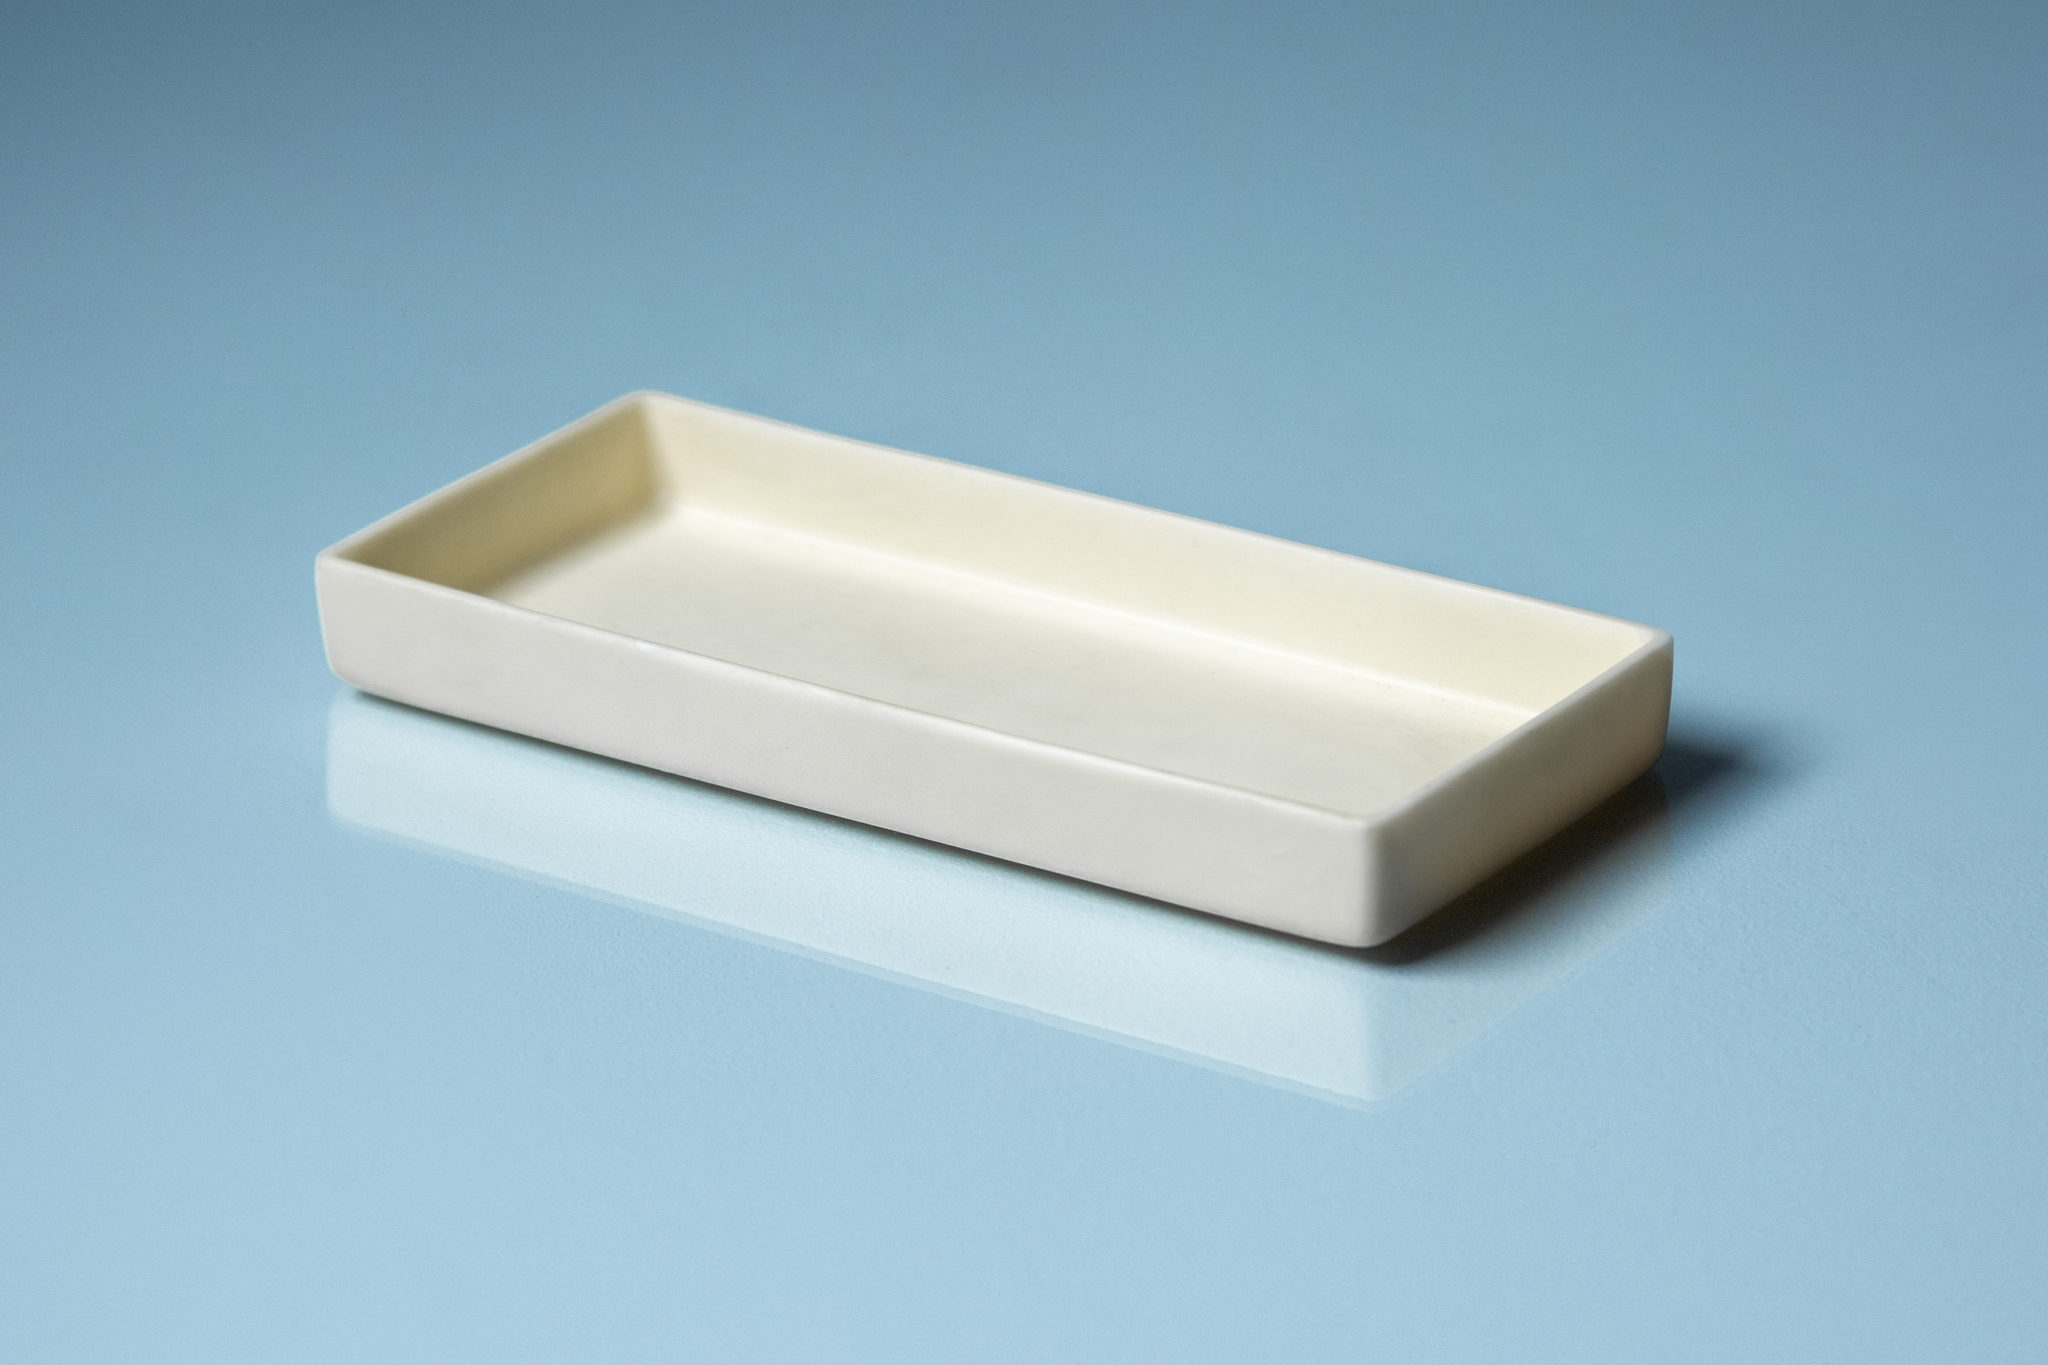 Alumina Rectanglular Tray